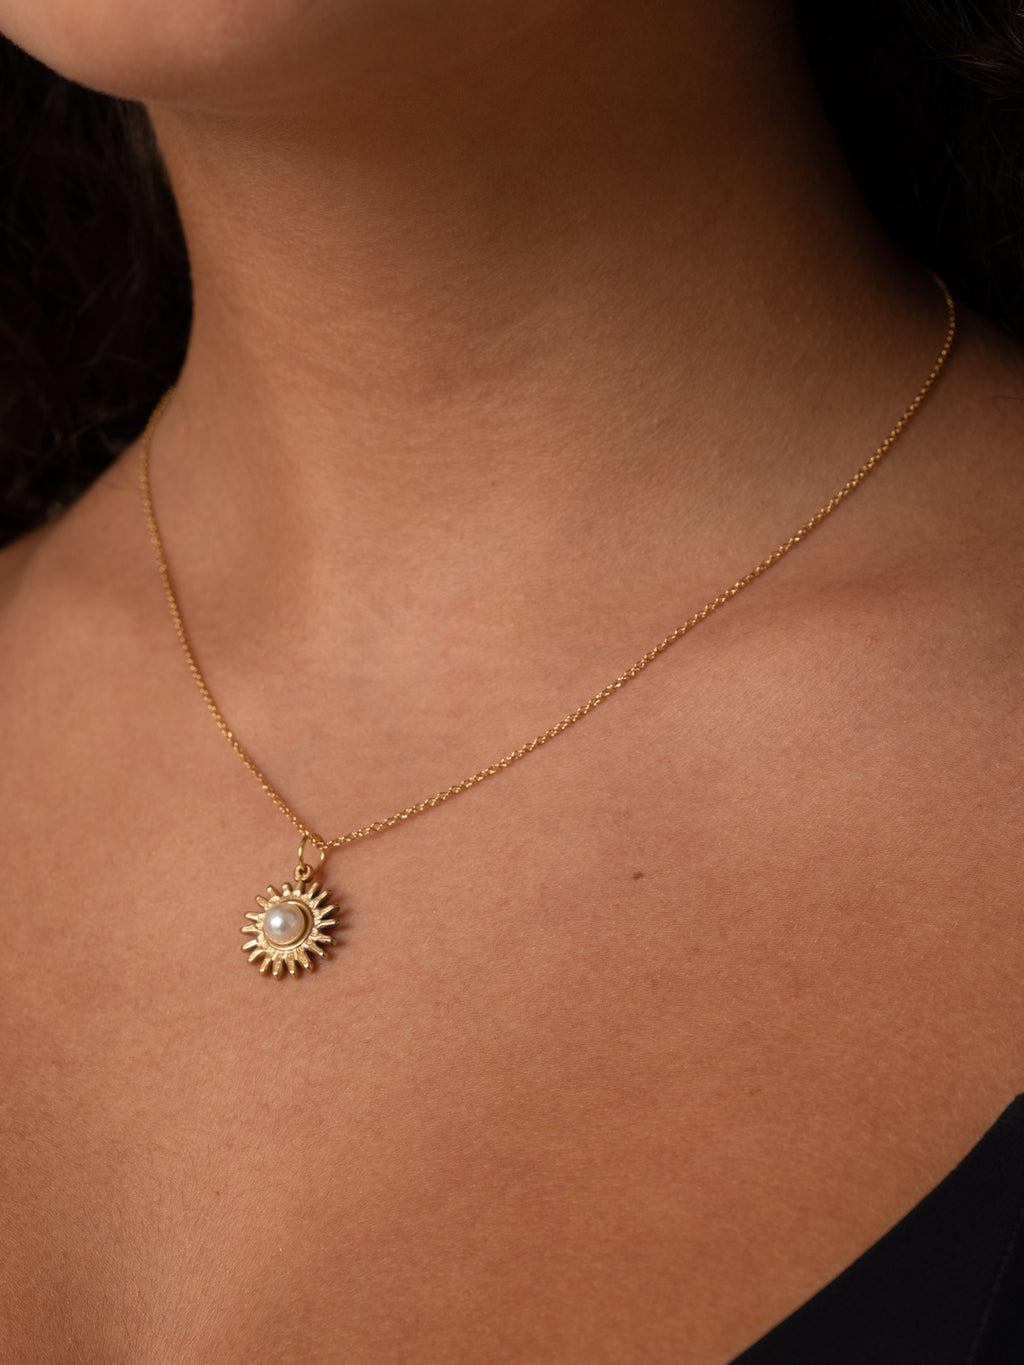 SUN NECKLACE // stainless steal